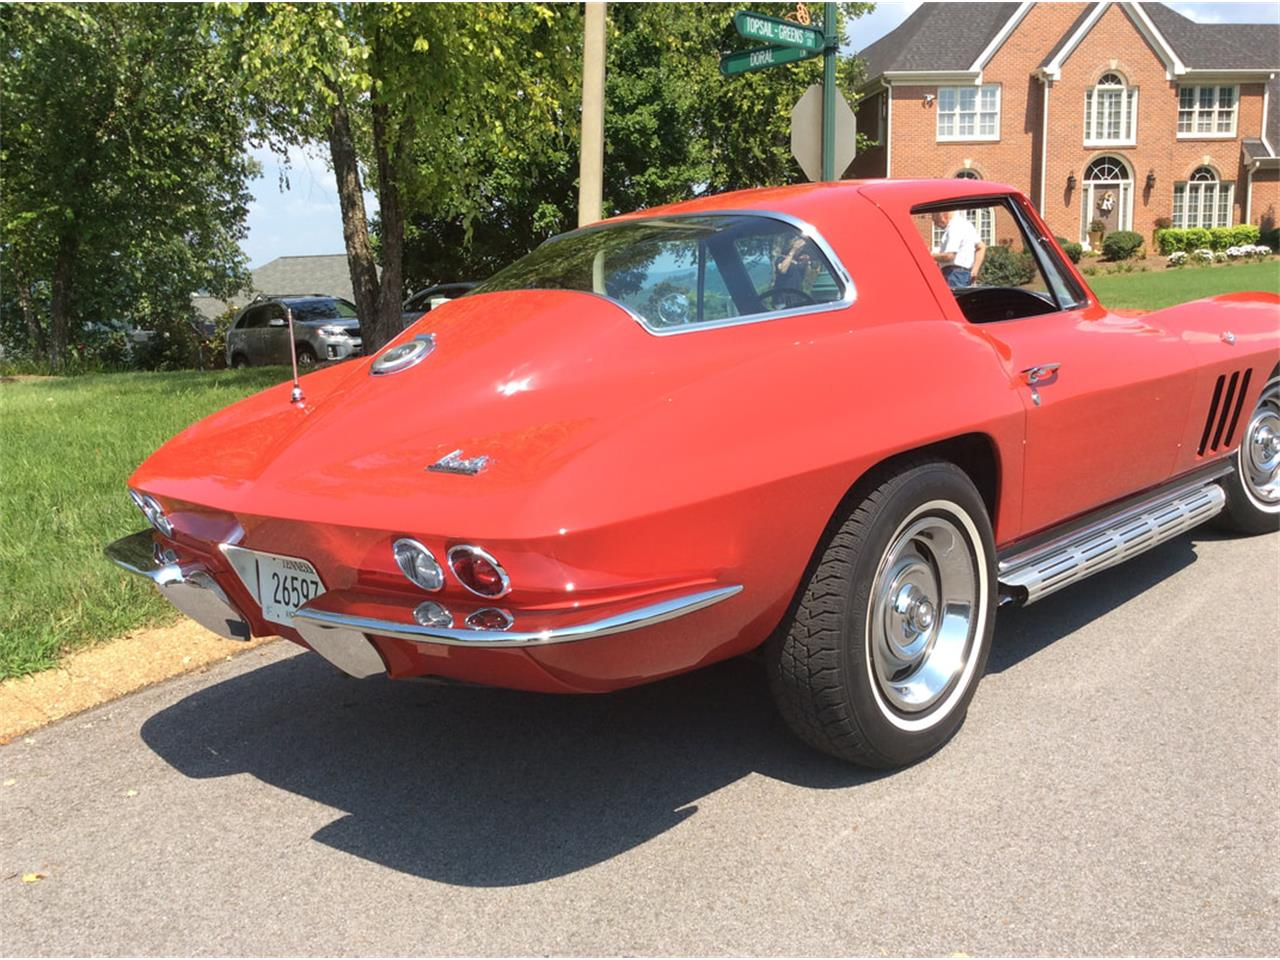 Large Picture of '66 Chevrolet Corvette - $109,500.00 Offered by a Private Seller - MEJZ